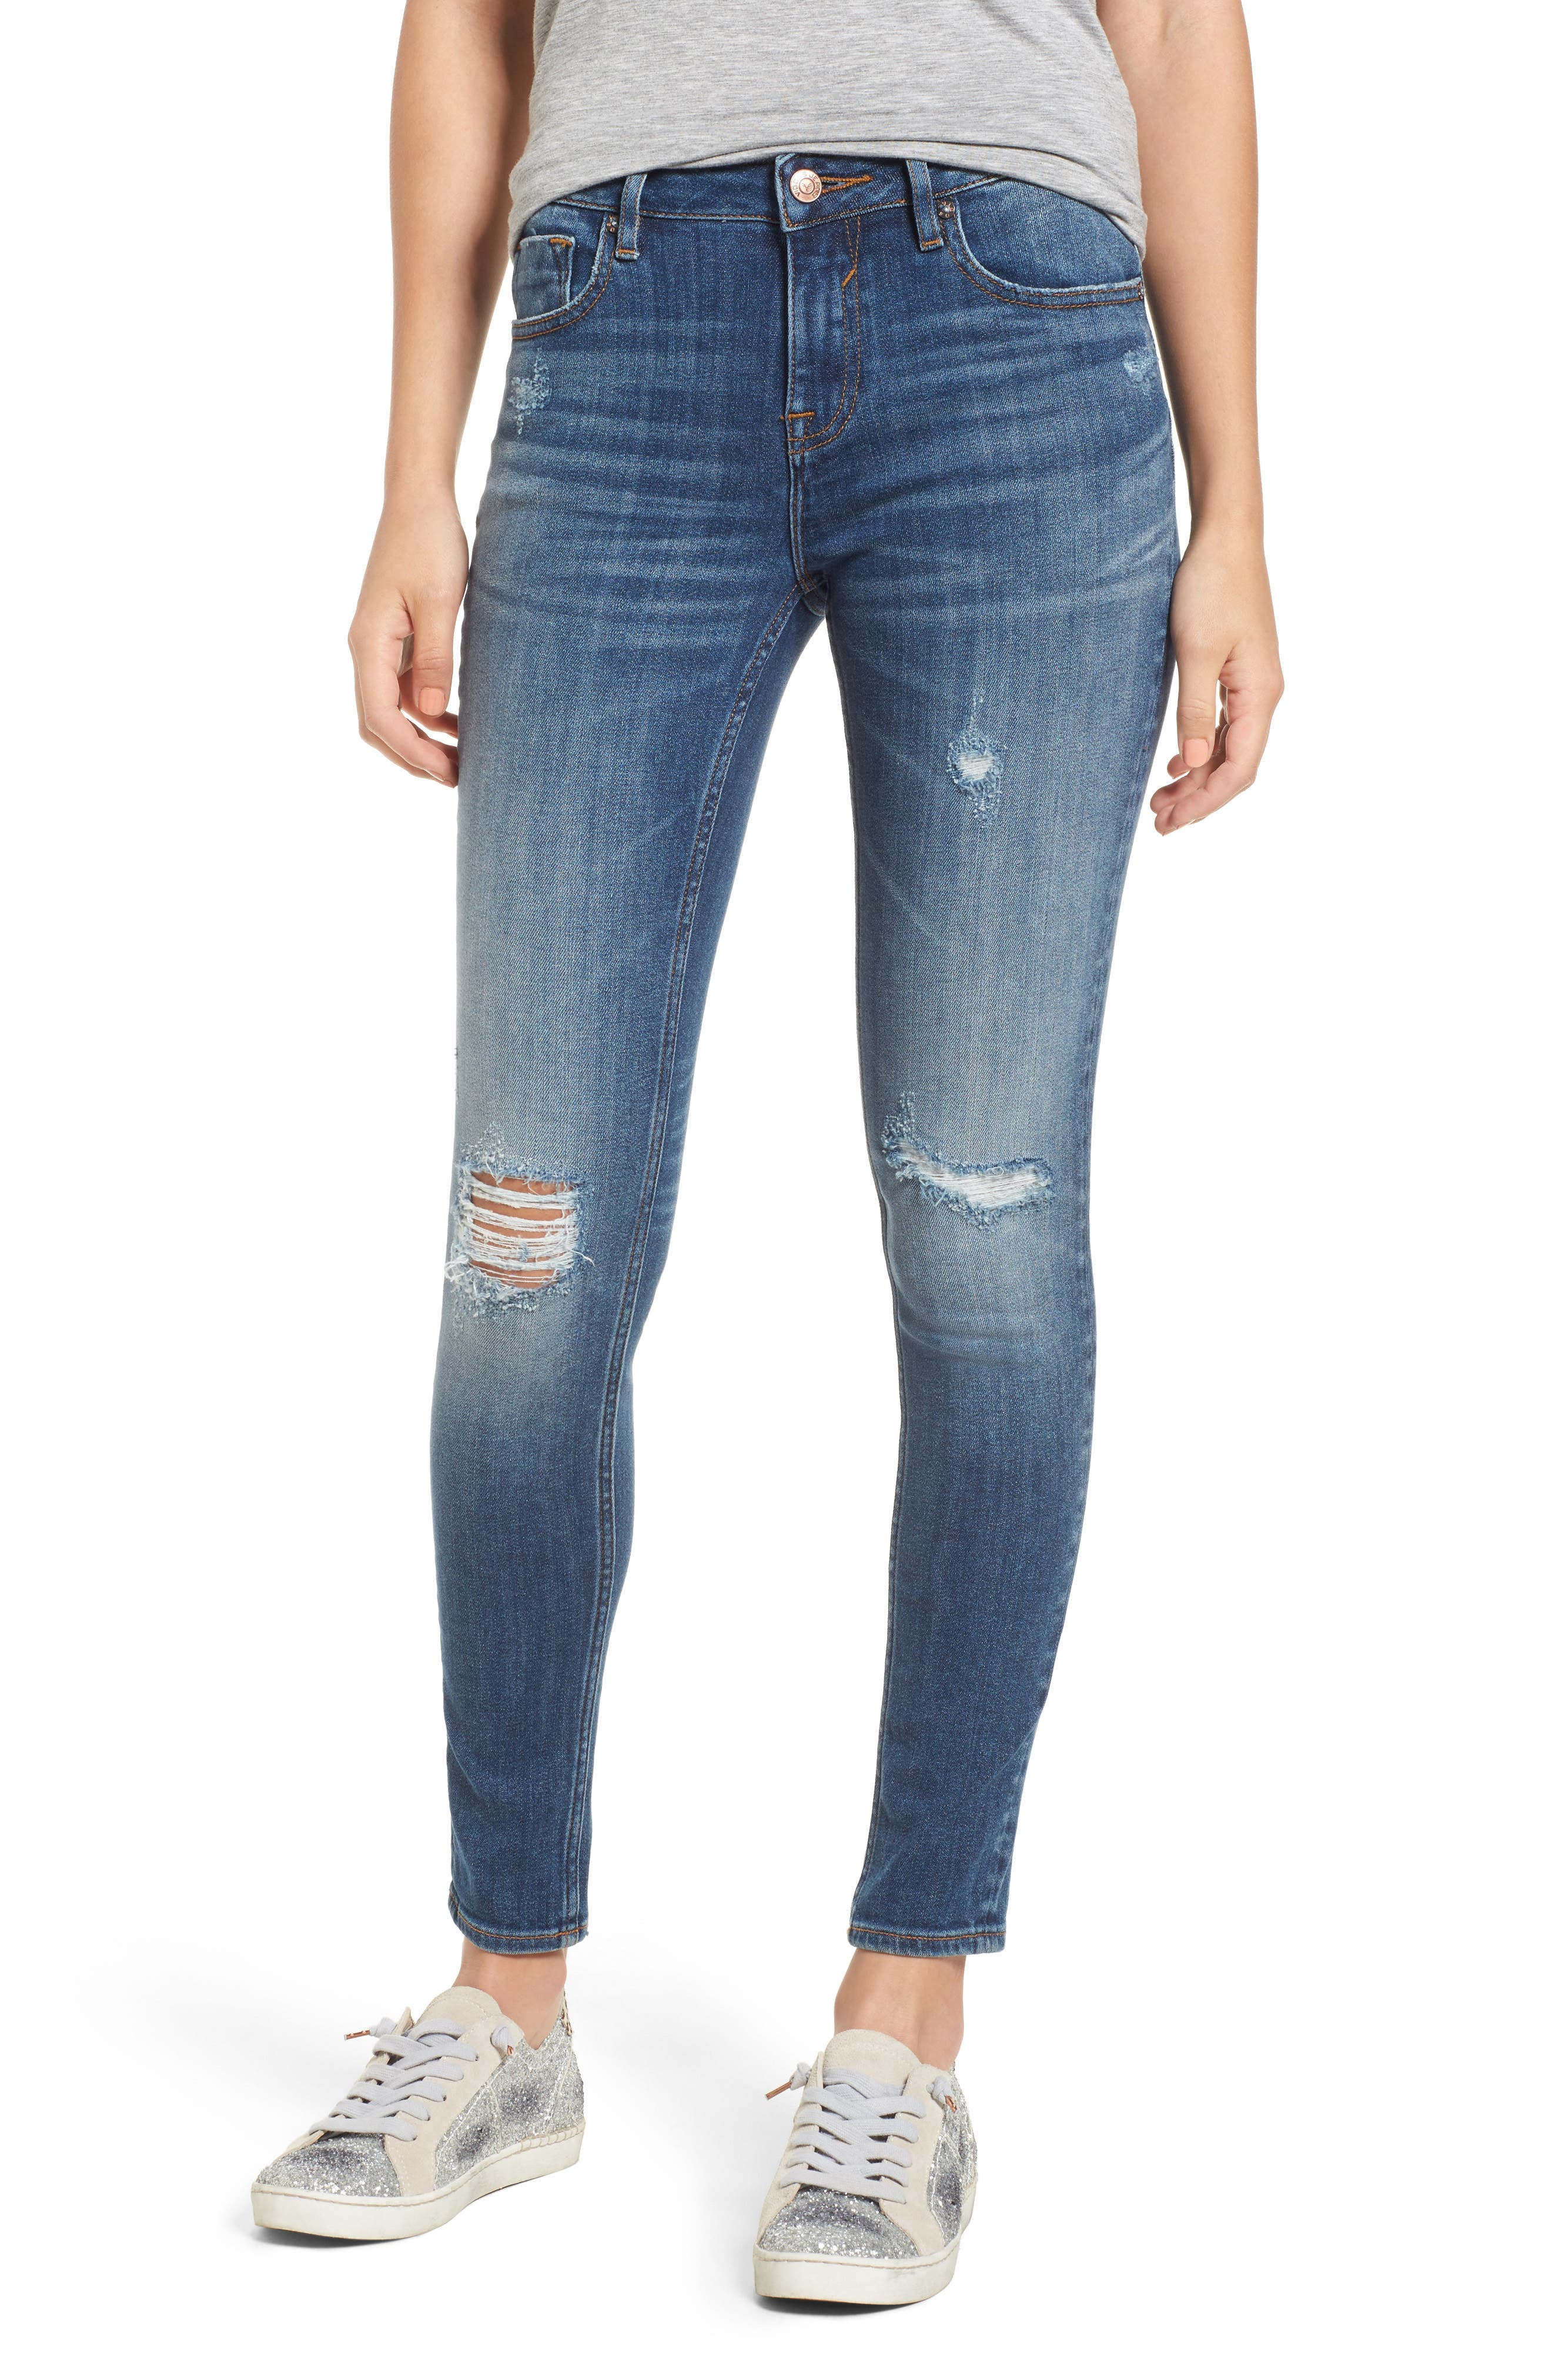 Vigoss Jagger Ripped Skinny Jeans (Medium Wash)